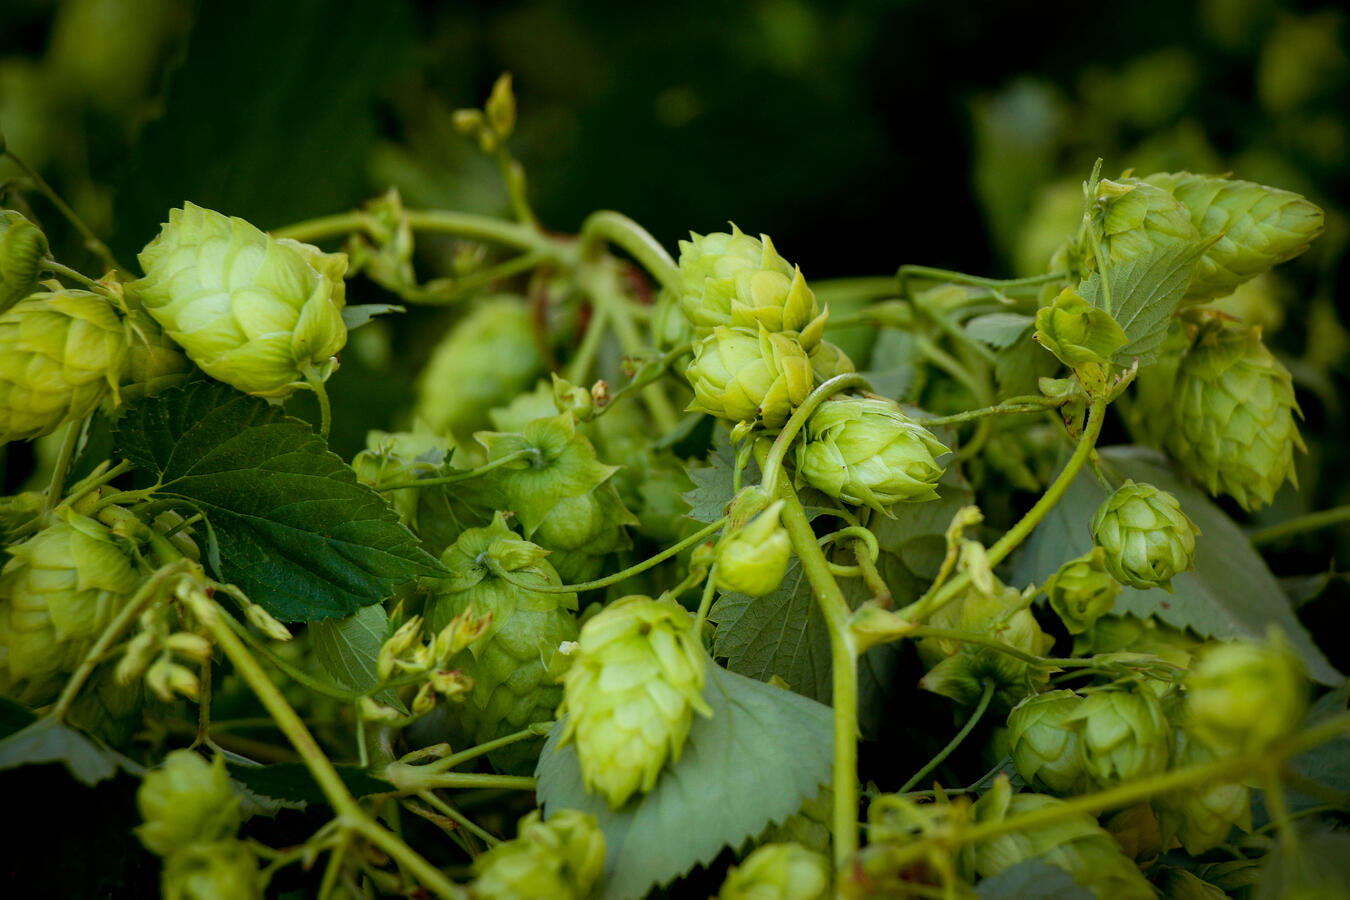 Beautiful hops flowers still on the vine after harvest